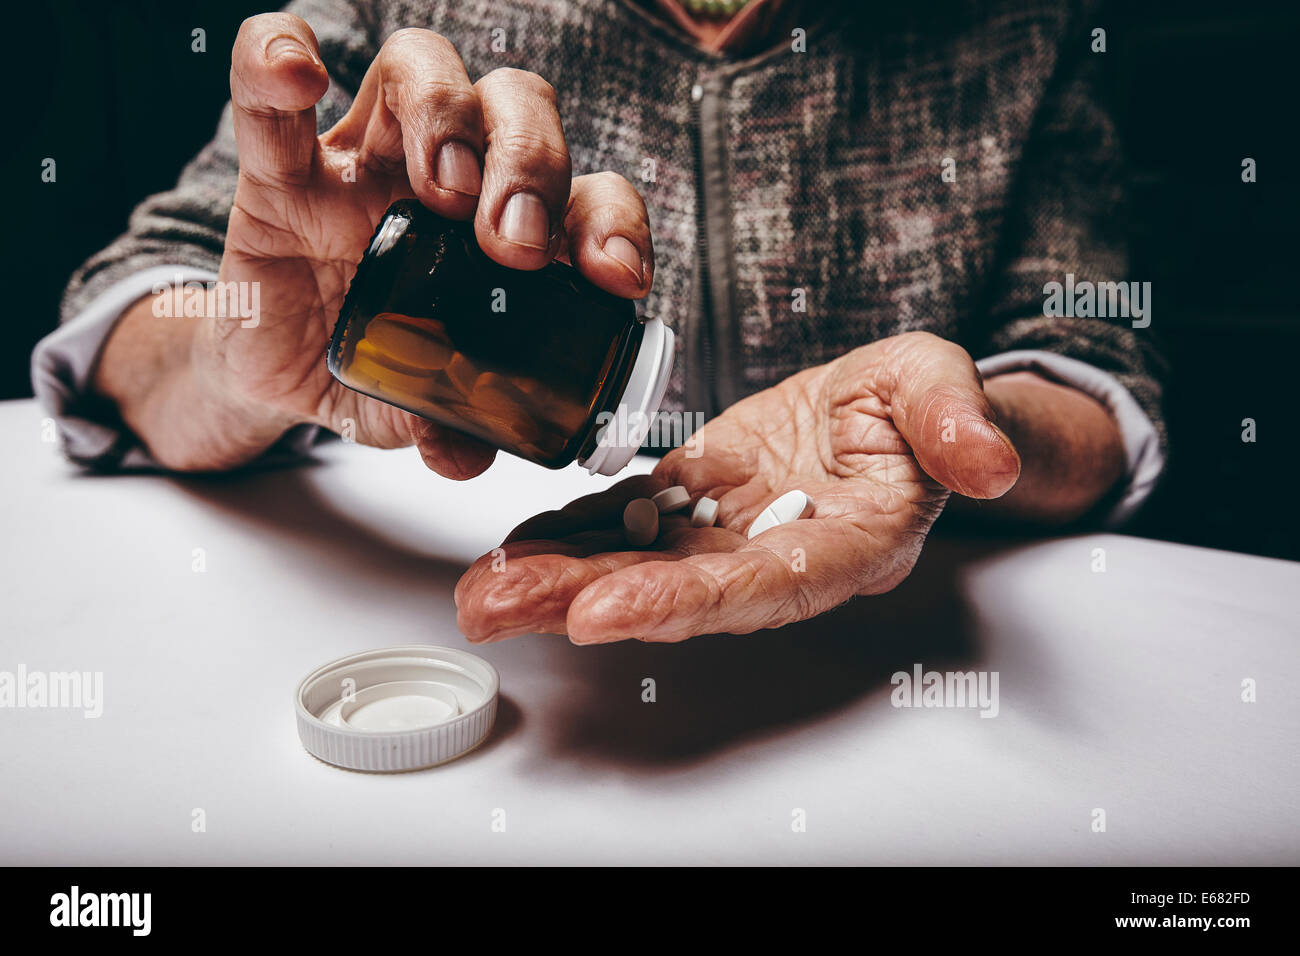 Cropped view of elderly woman taking prescription medicine from pill bottle. Senior female's hands pouring pills - Stock Image